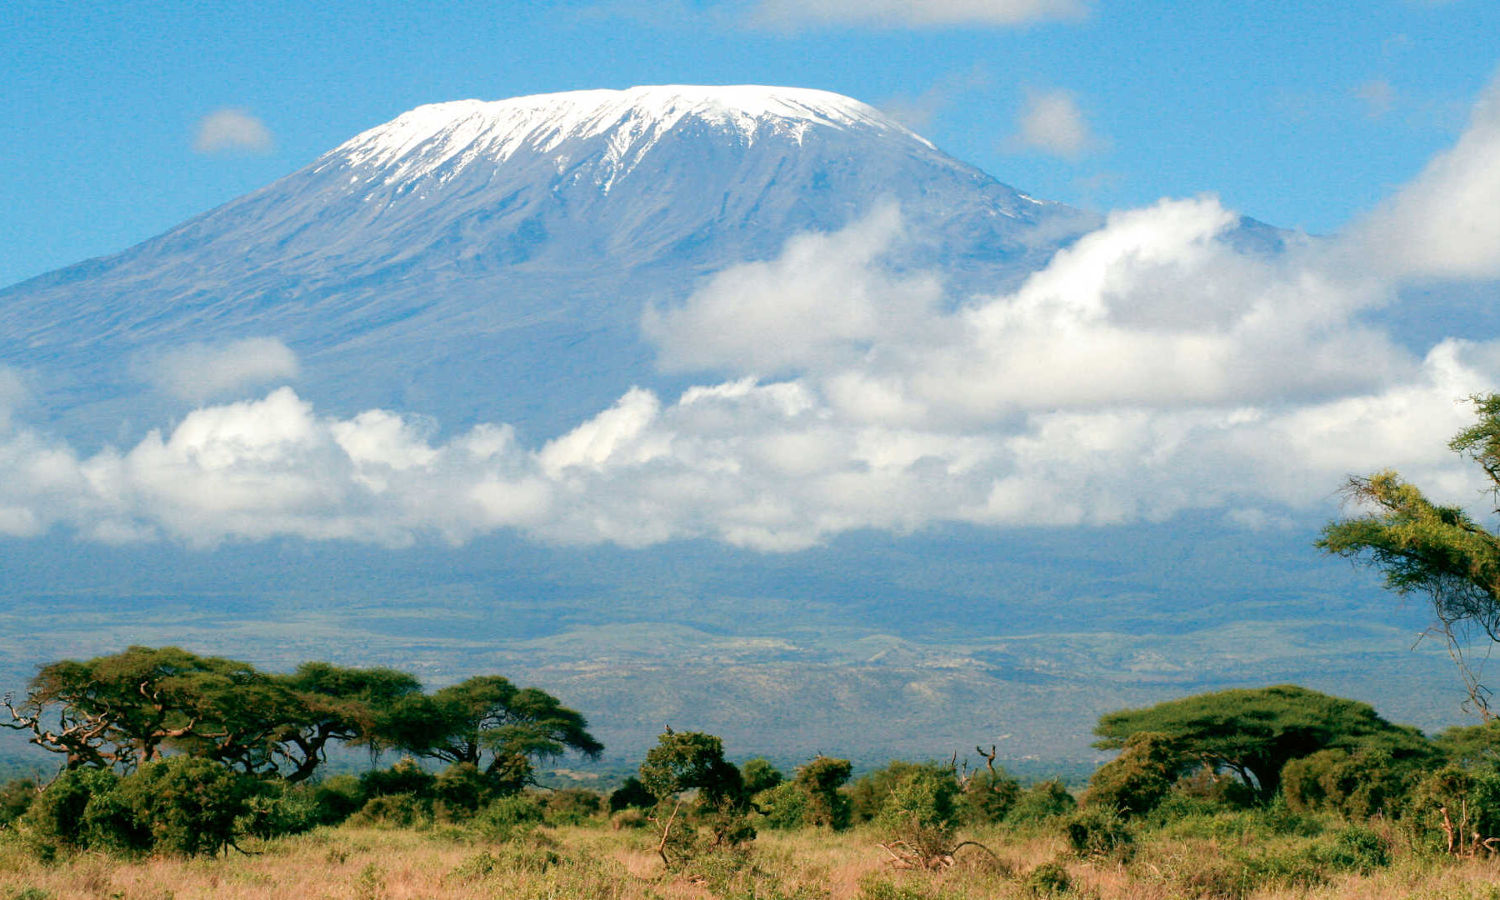 safari-in-kenia-kilimanjaro